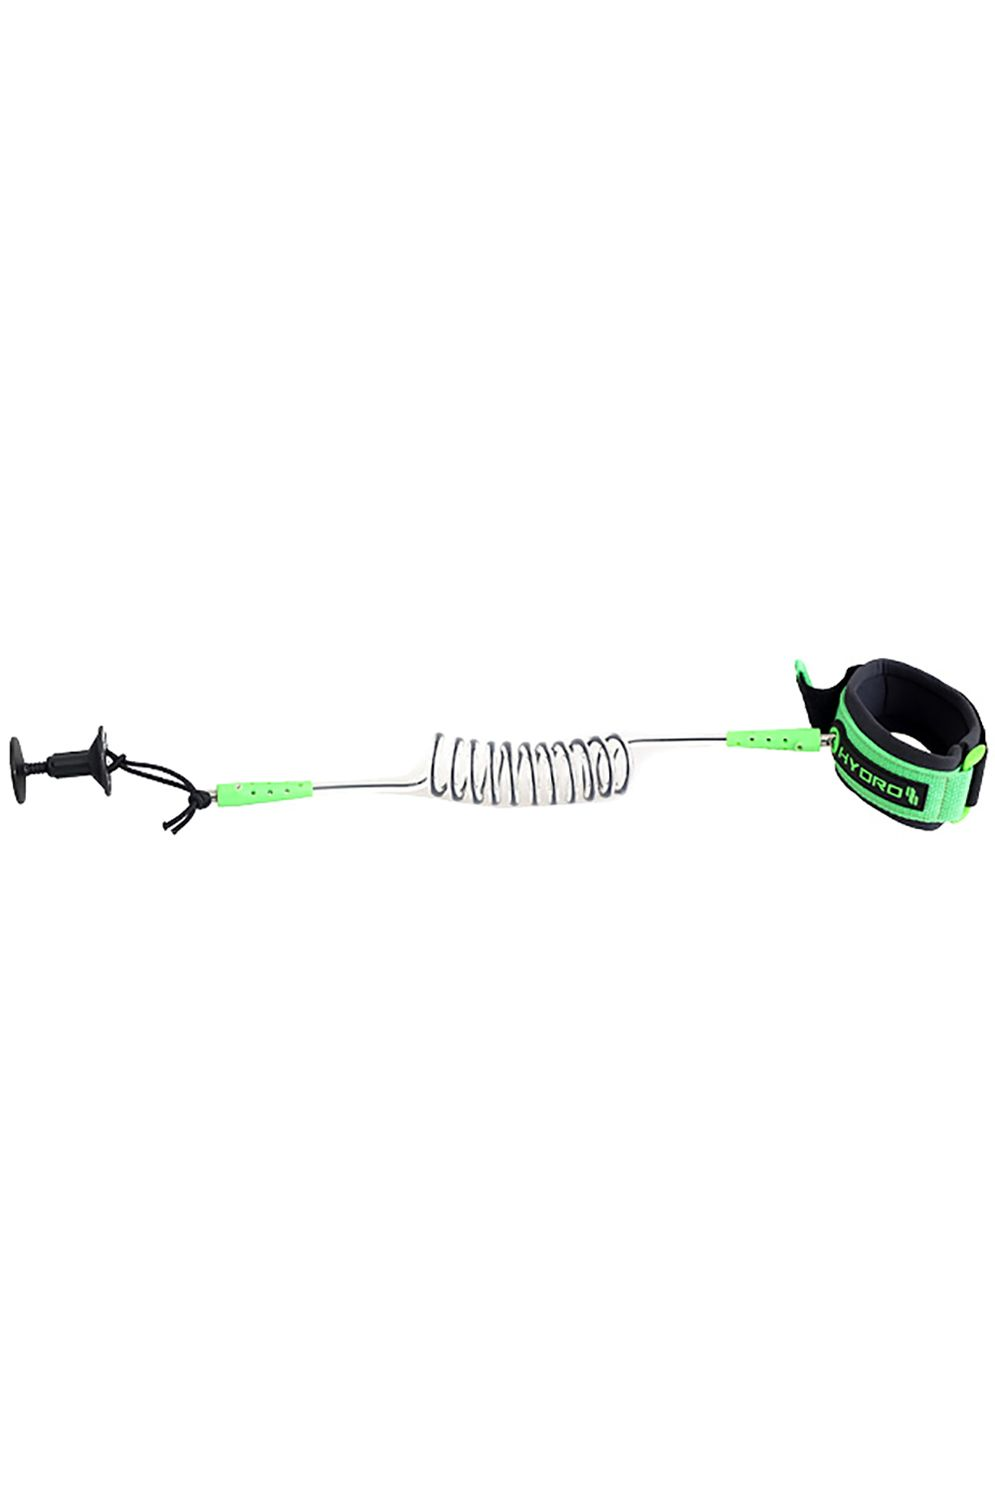 Hydro Leash HYDRO BODYBOARD WRIST LEASH CHAROCAL/GREEN Assorted